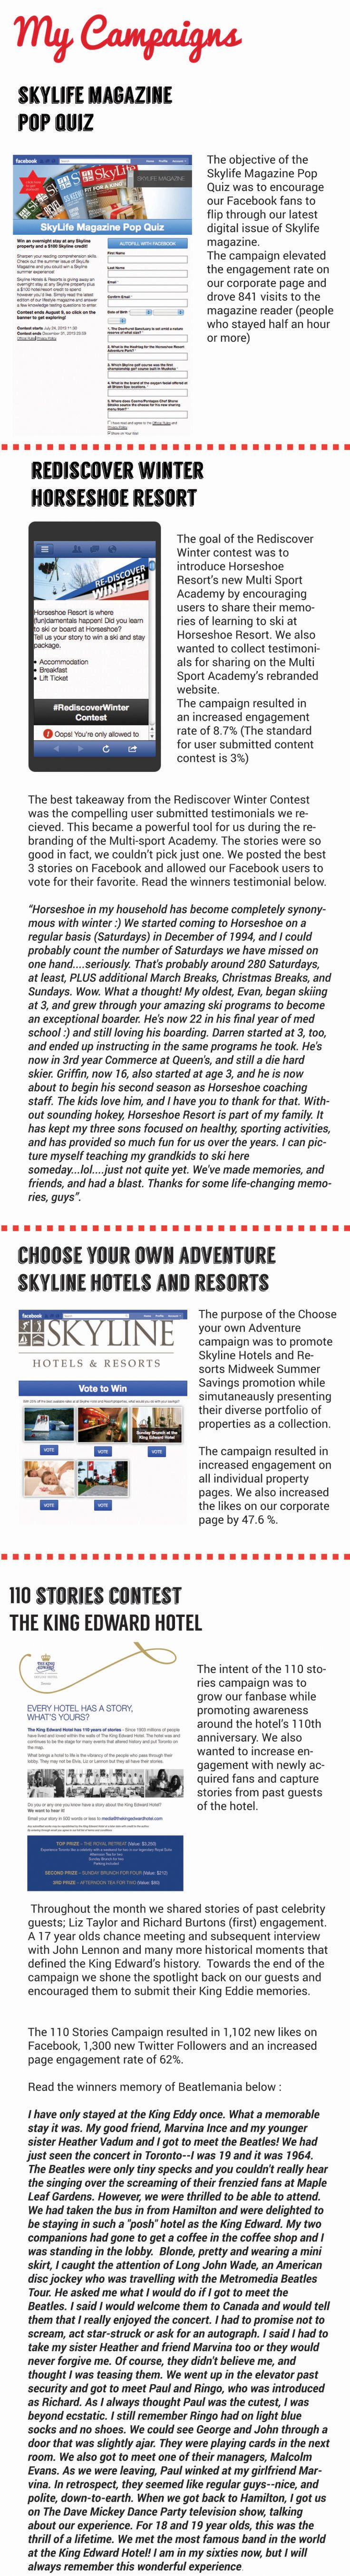 These are some of the #socialmedia campaigns I have run for Skyline Hotels and Resorts this year.